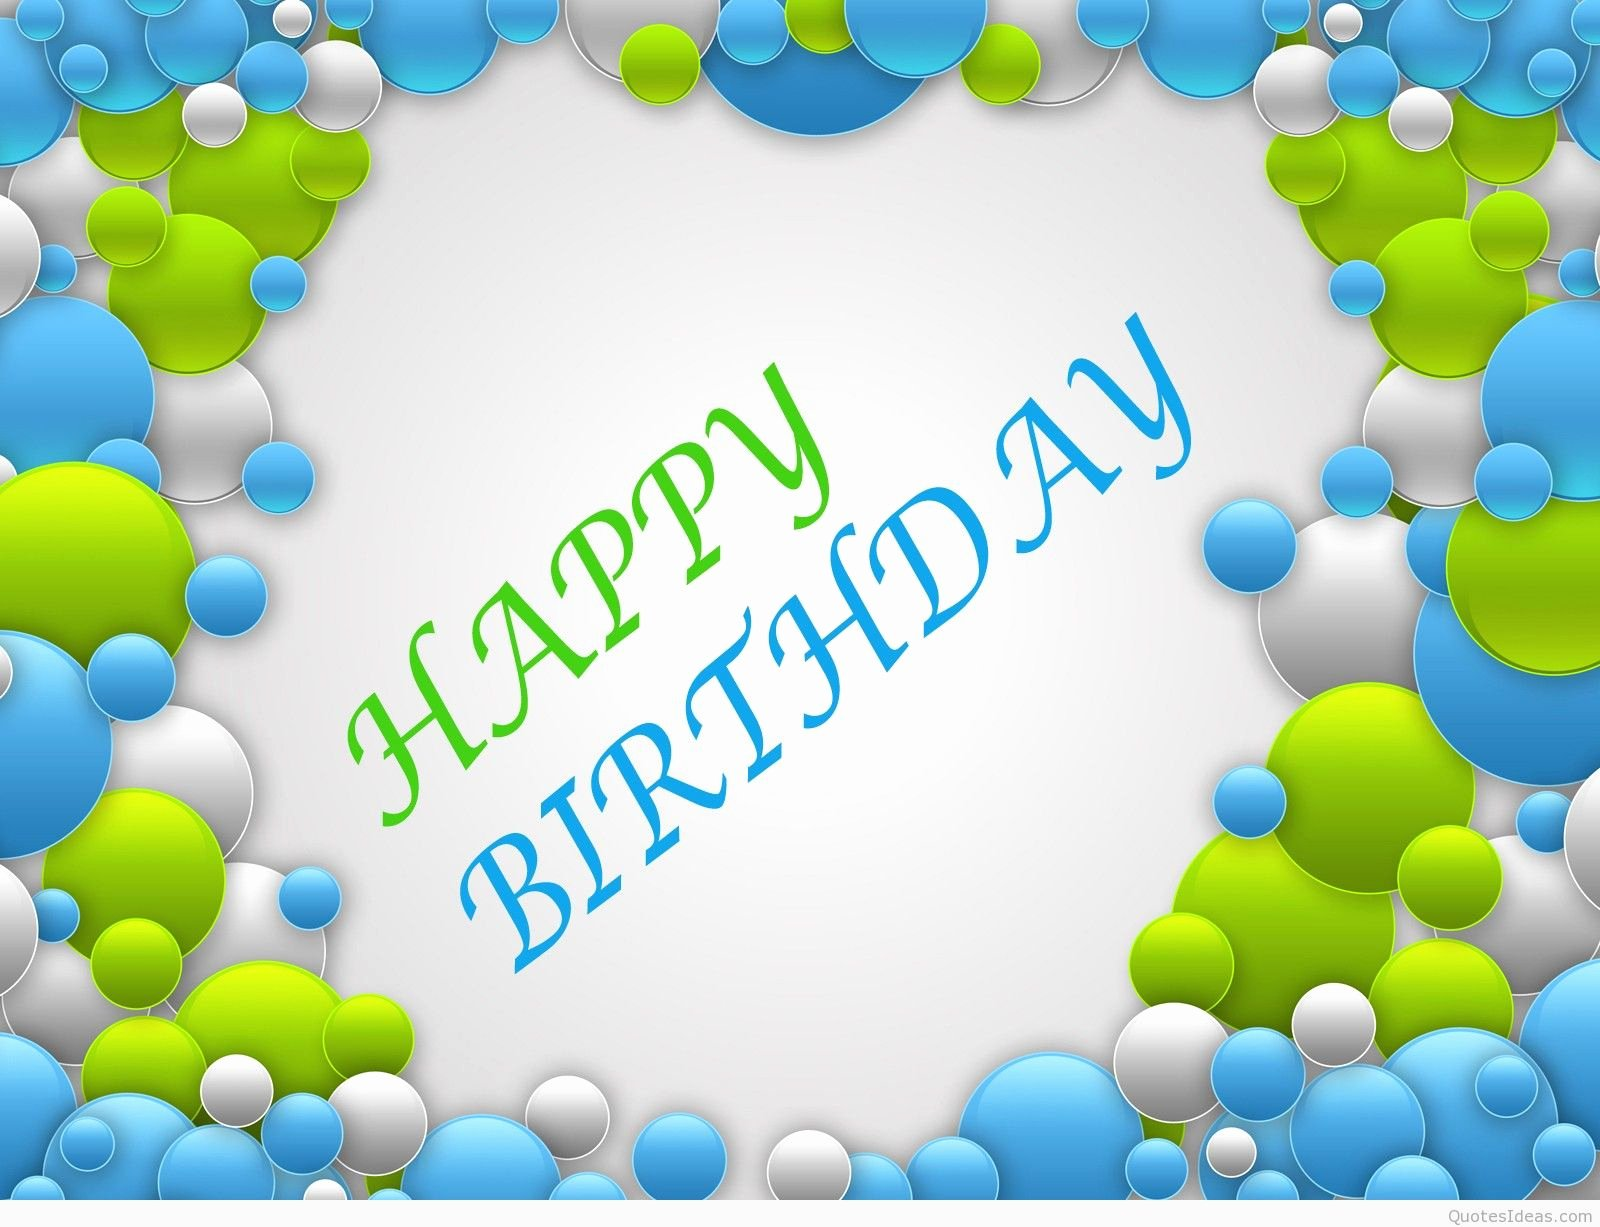 Happy Birthday Background Images Fresh Happy Anniversary Birthdays Wallpapers Cakes and Wishes